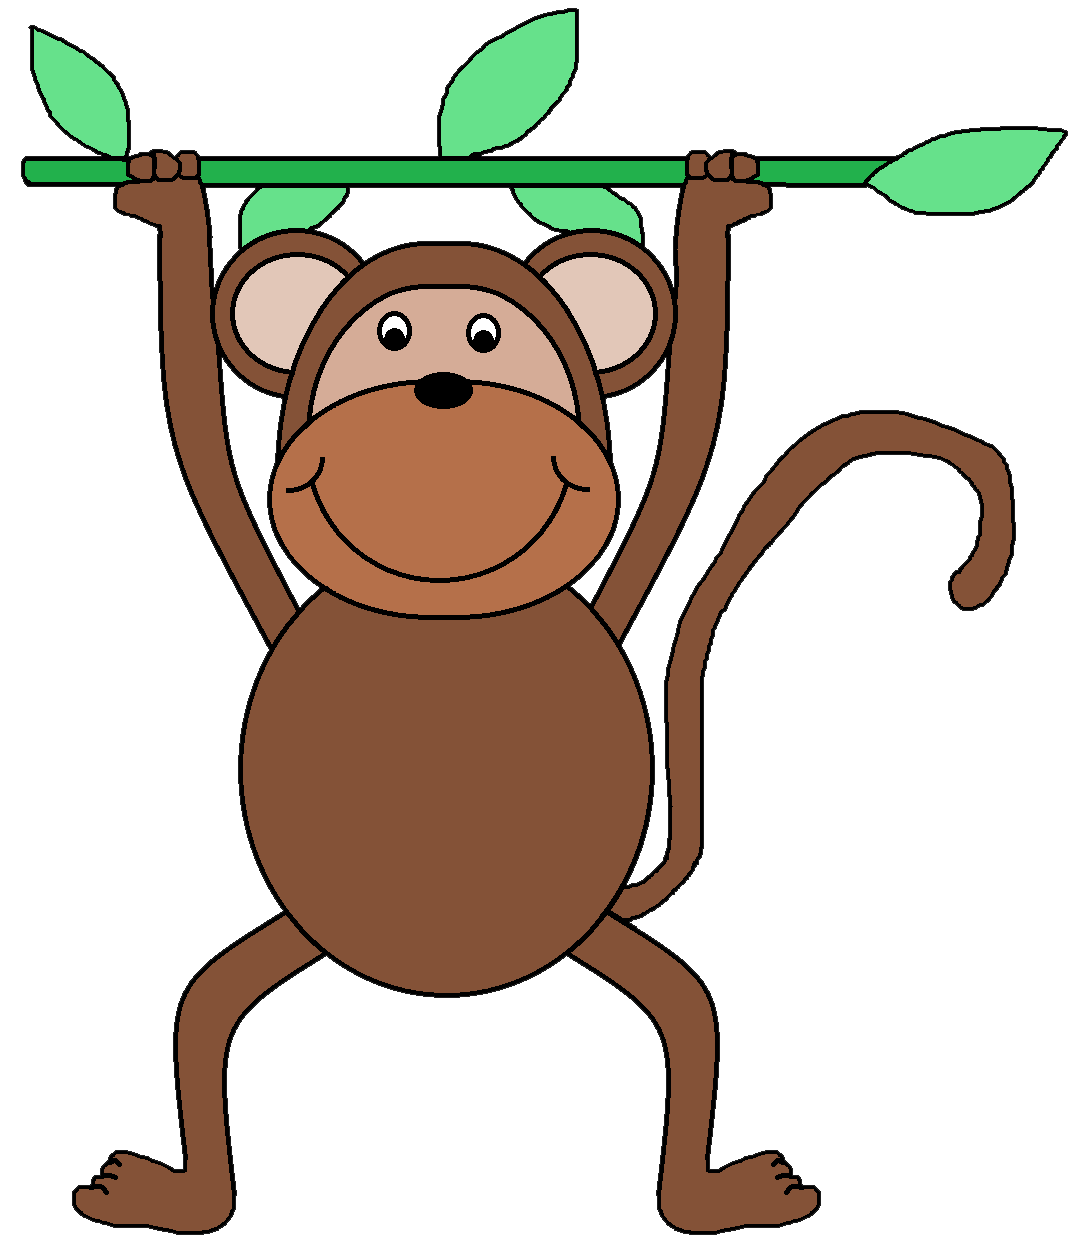 Monkey clip art for teachers free clipart images 4